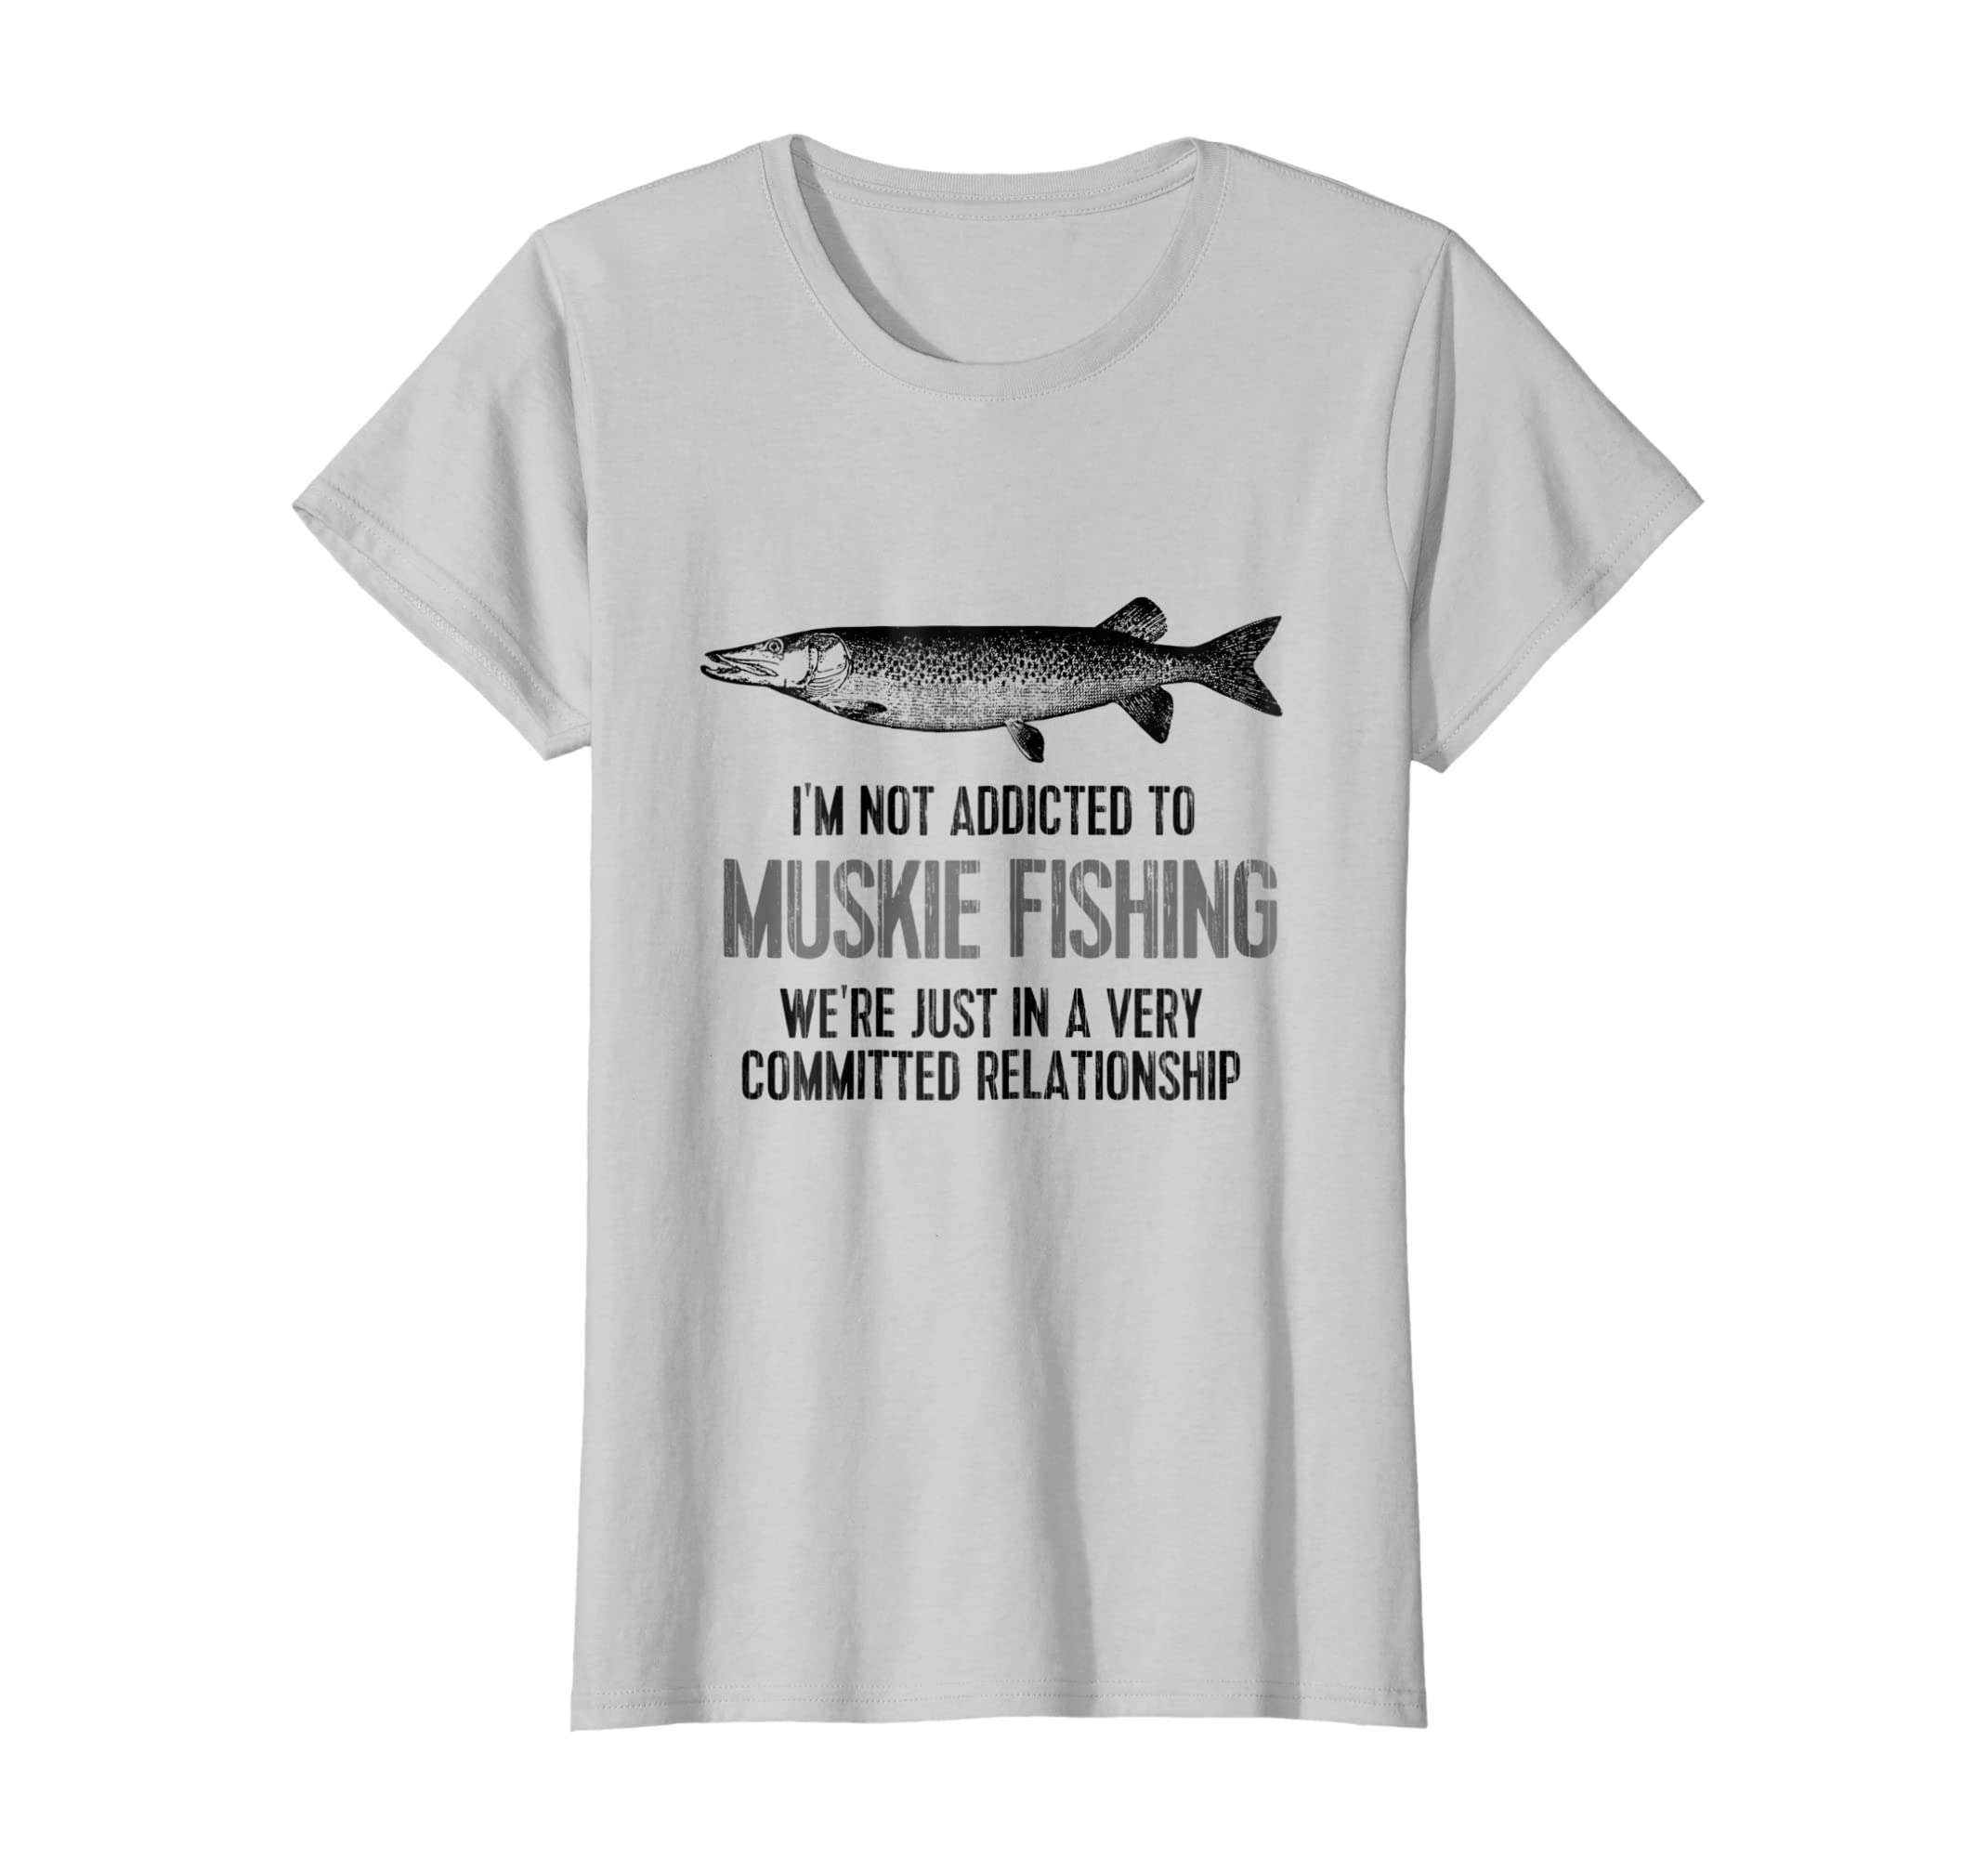 778b8f94 Amazon.com: Funny Muskie Fishing TShirt: Not Addicted to Muskie Fishing:  Clothing